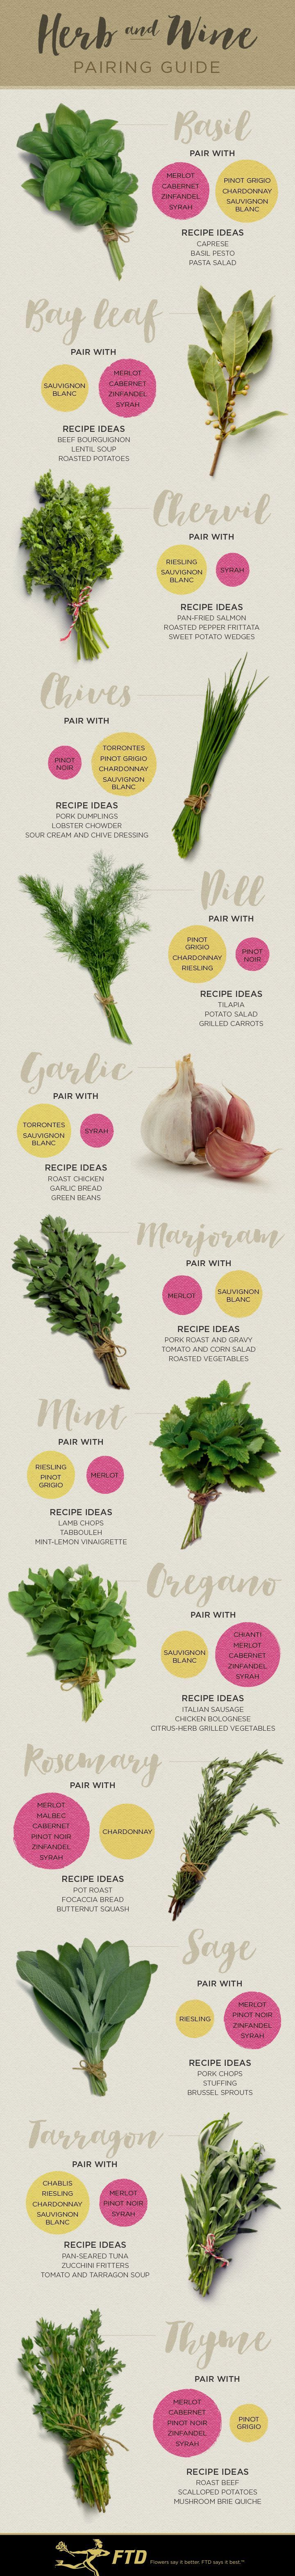 A Pairing Guide: The Best Wines For The Herbs You Cook With! - I love cooking with fresh herbs and I love wine, so what better way to learn about pairing the two than with this infographic! #winepairings